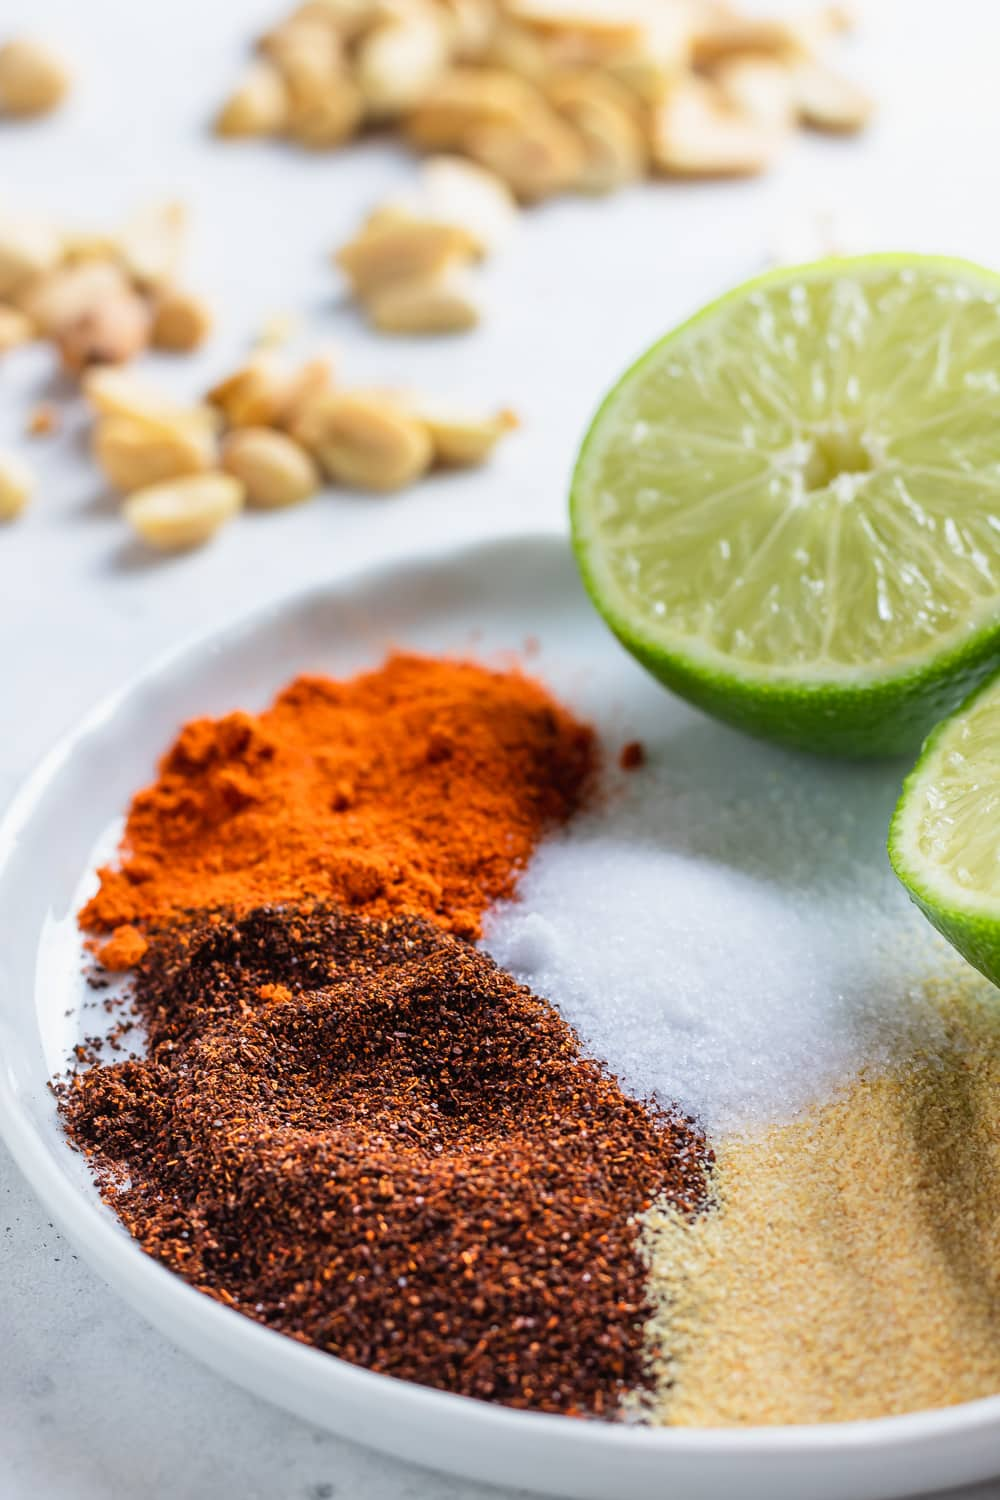 assorted spices and limes